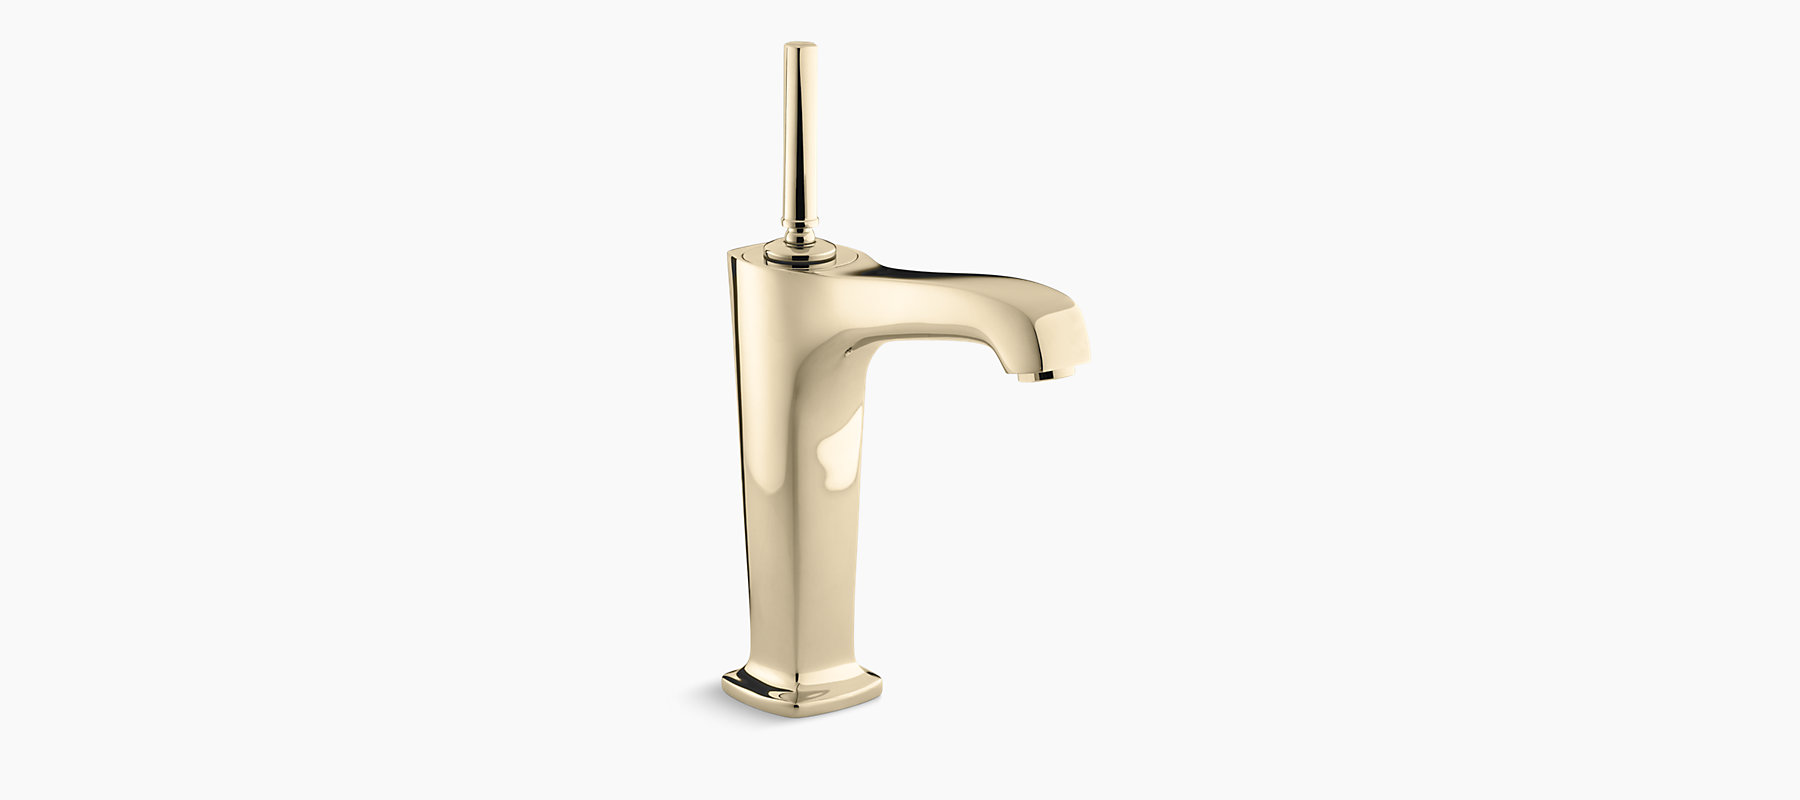 Modern Faucets Bathroom Kohler Toilets Showers Sinks Faucets And More For Bathroom